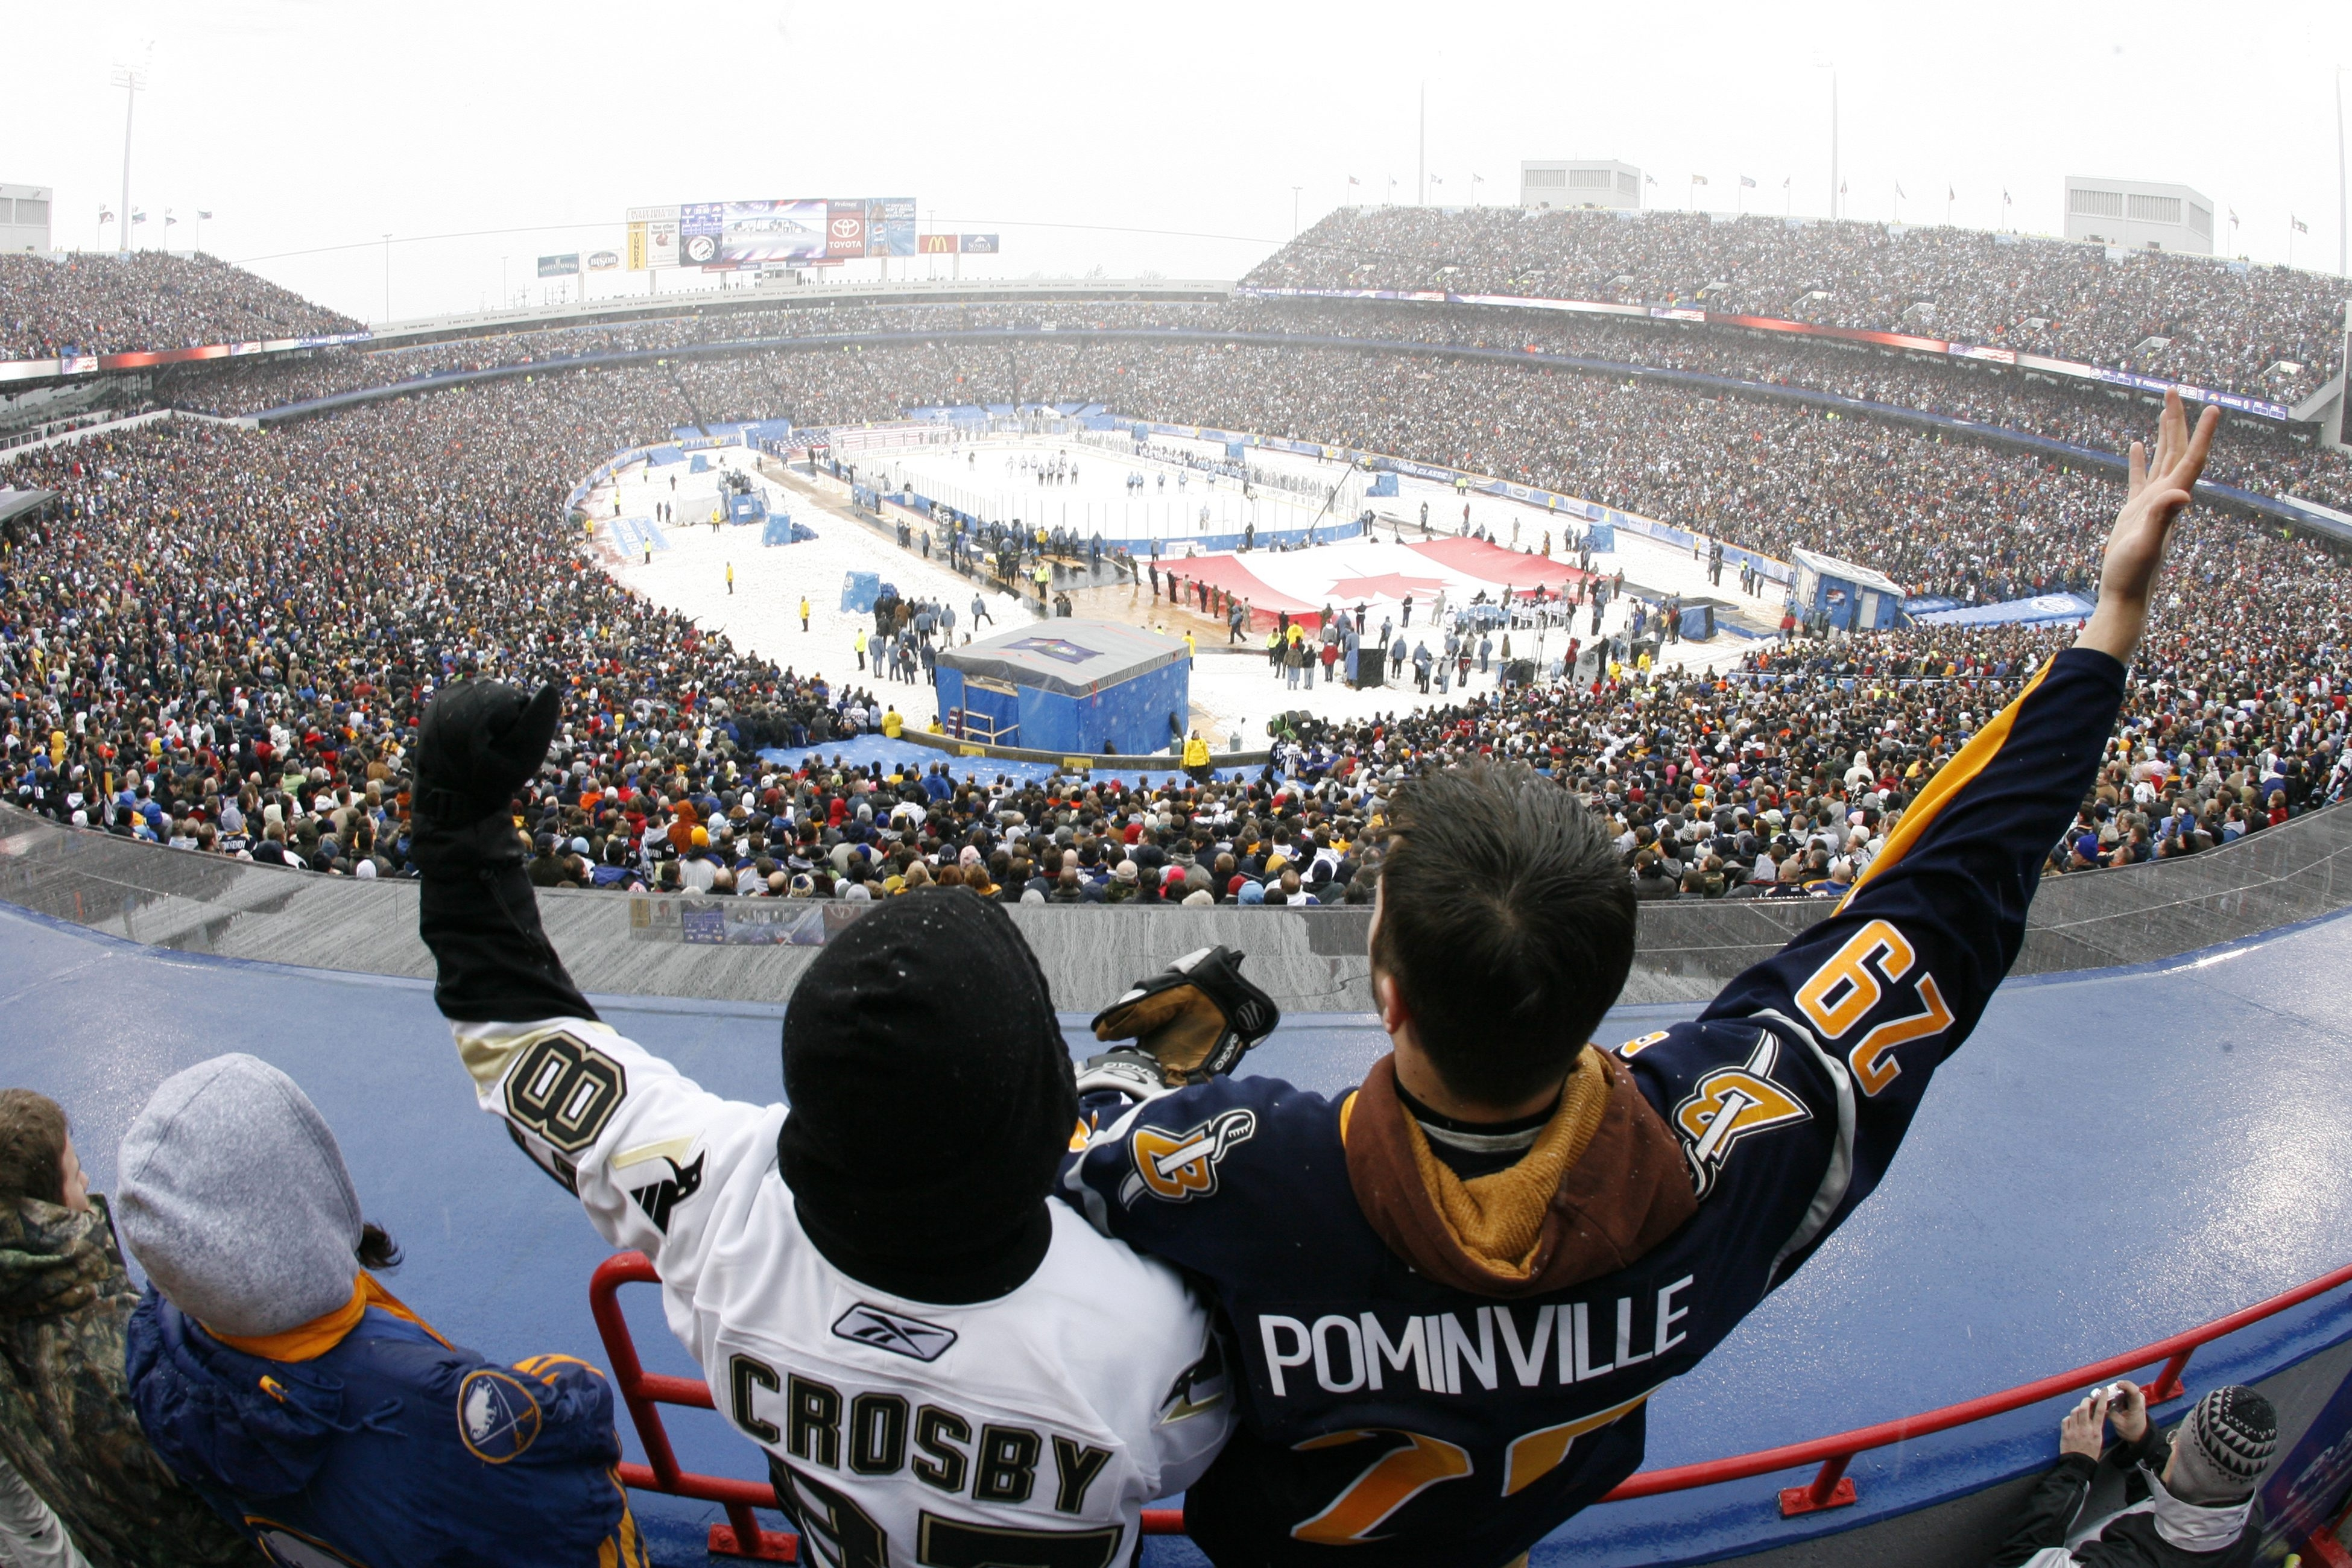 The World Juniors tournament in Buffalo in 2018 may include an outdoor game like the NHL's Winter Classic in 2008.